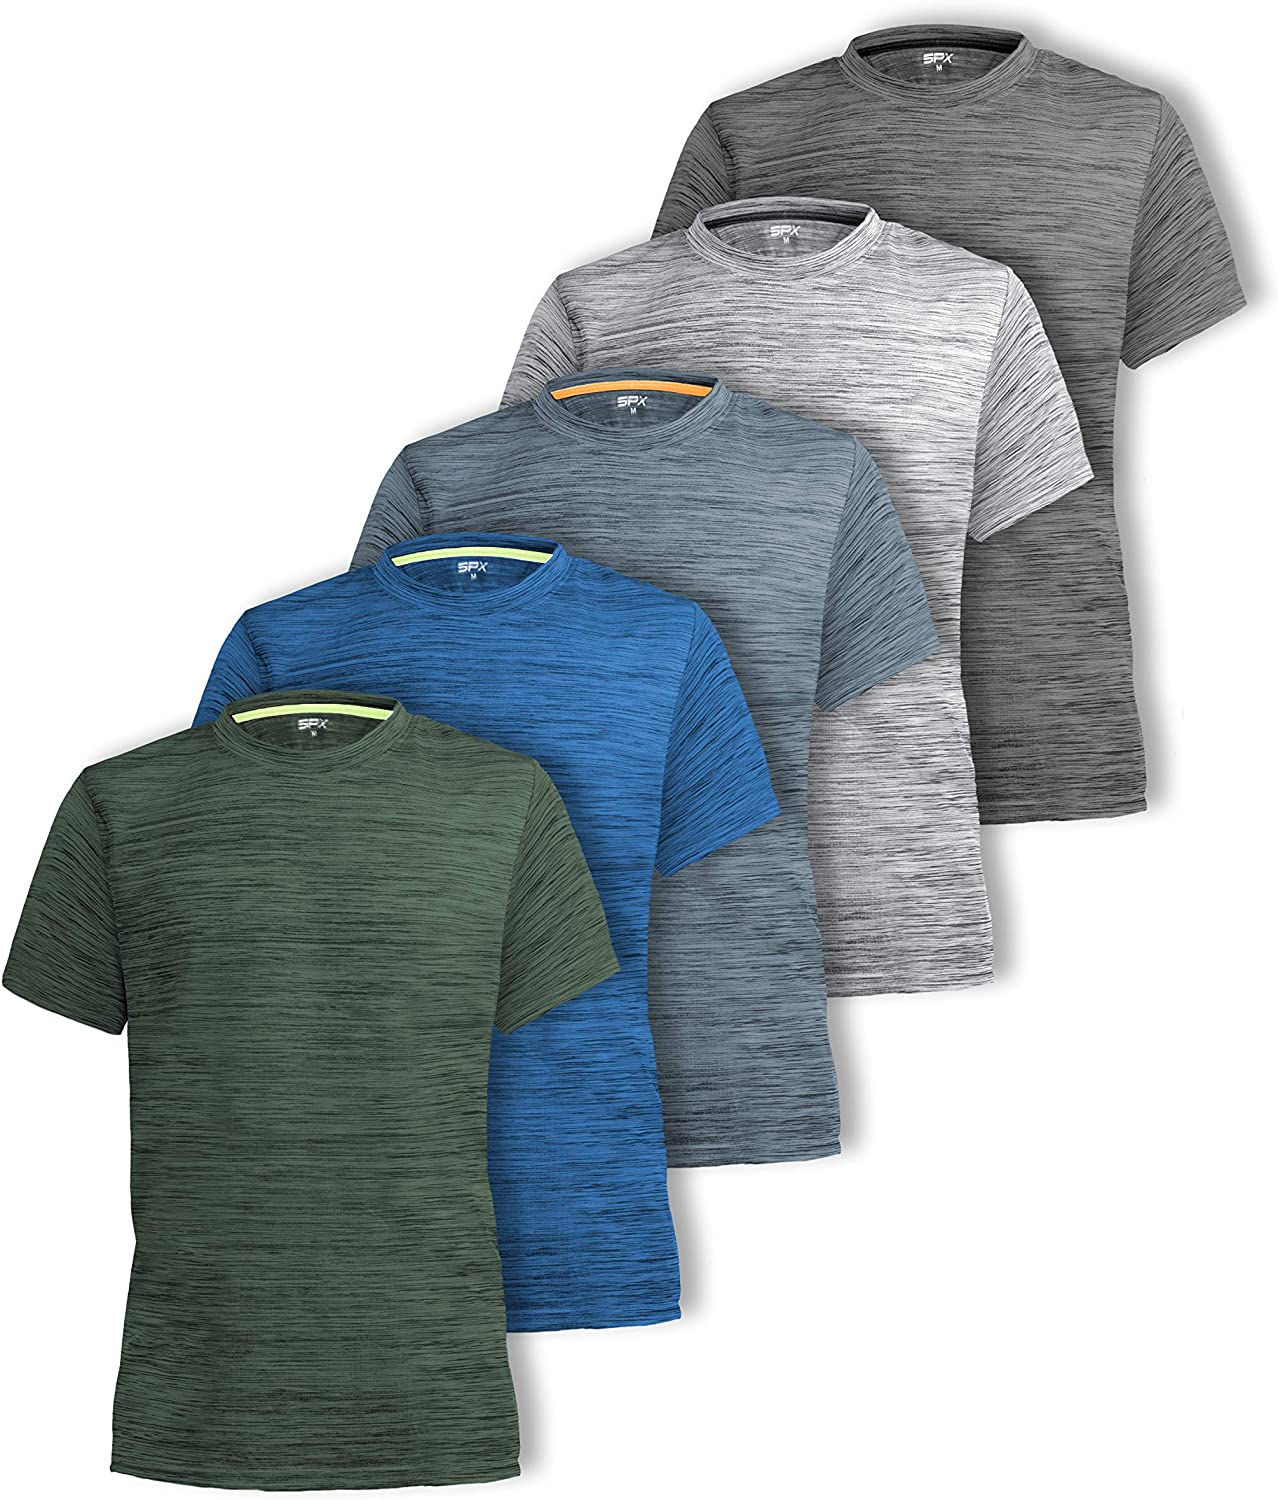 CR Mens Dry Fit Workout Running Athletic Shirts